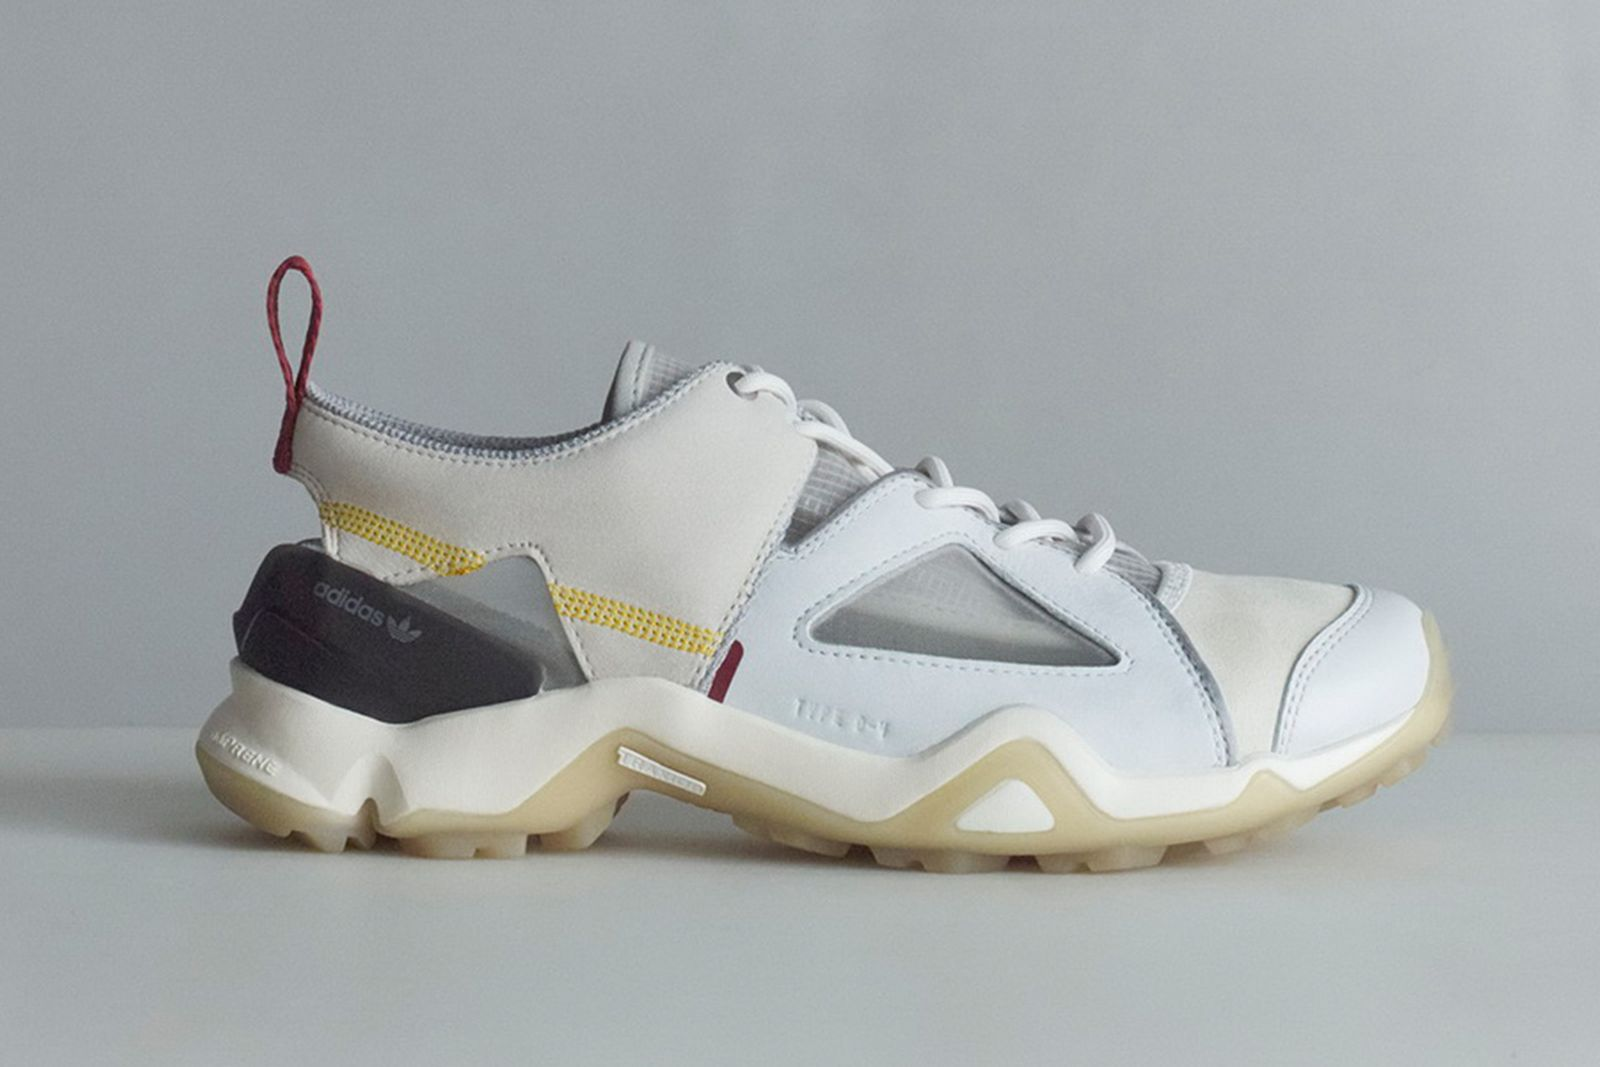 OAMC x adidas Originals SS20 footwear collection product shot